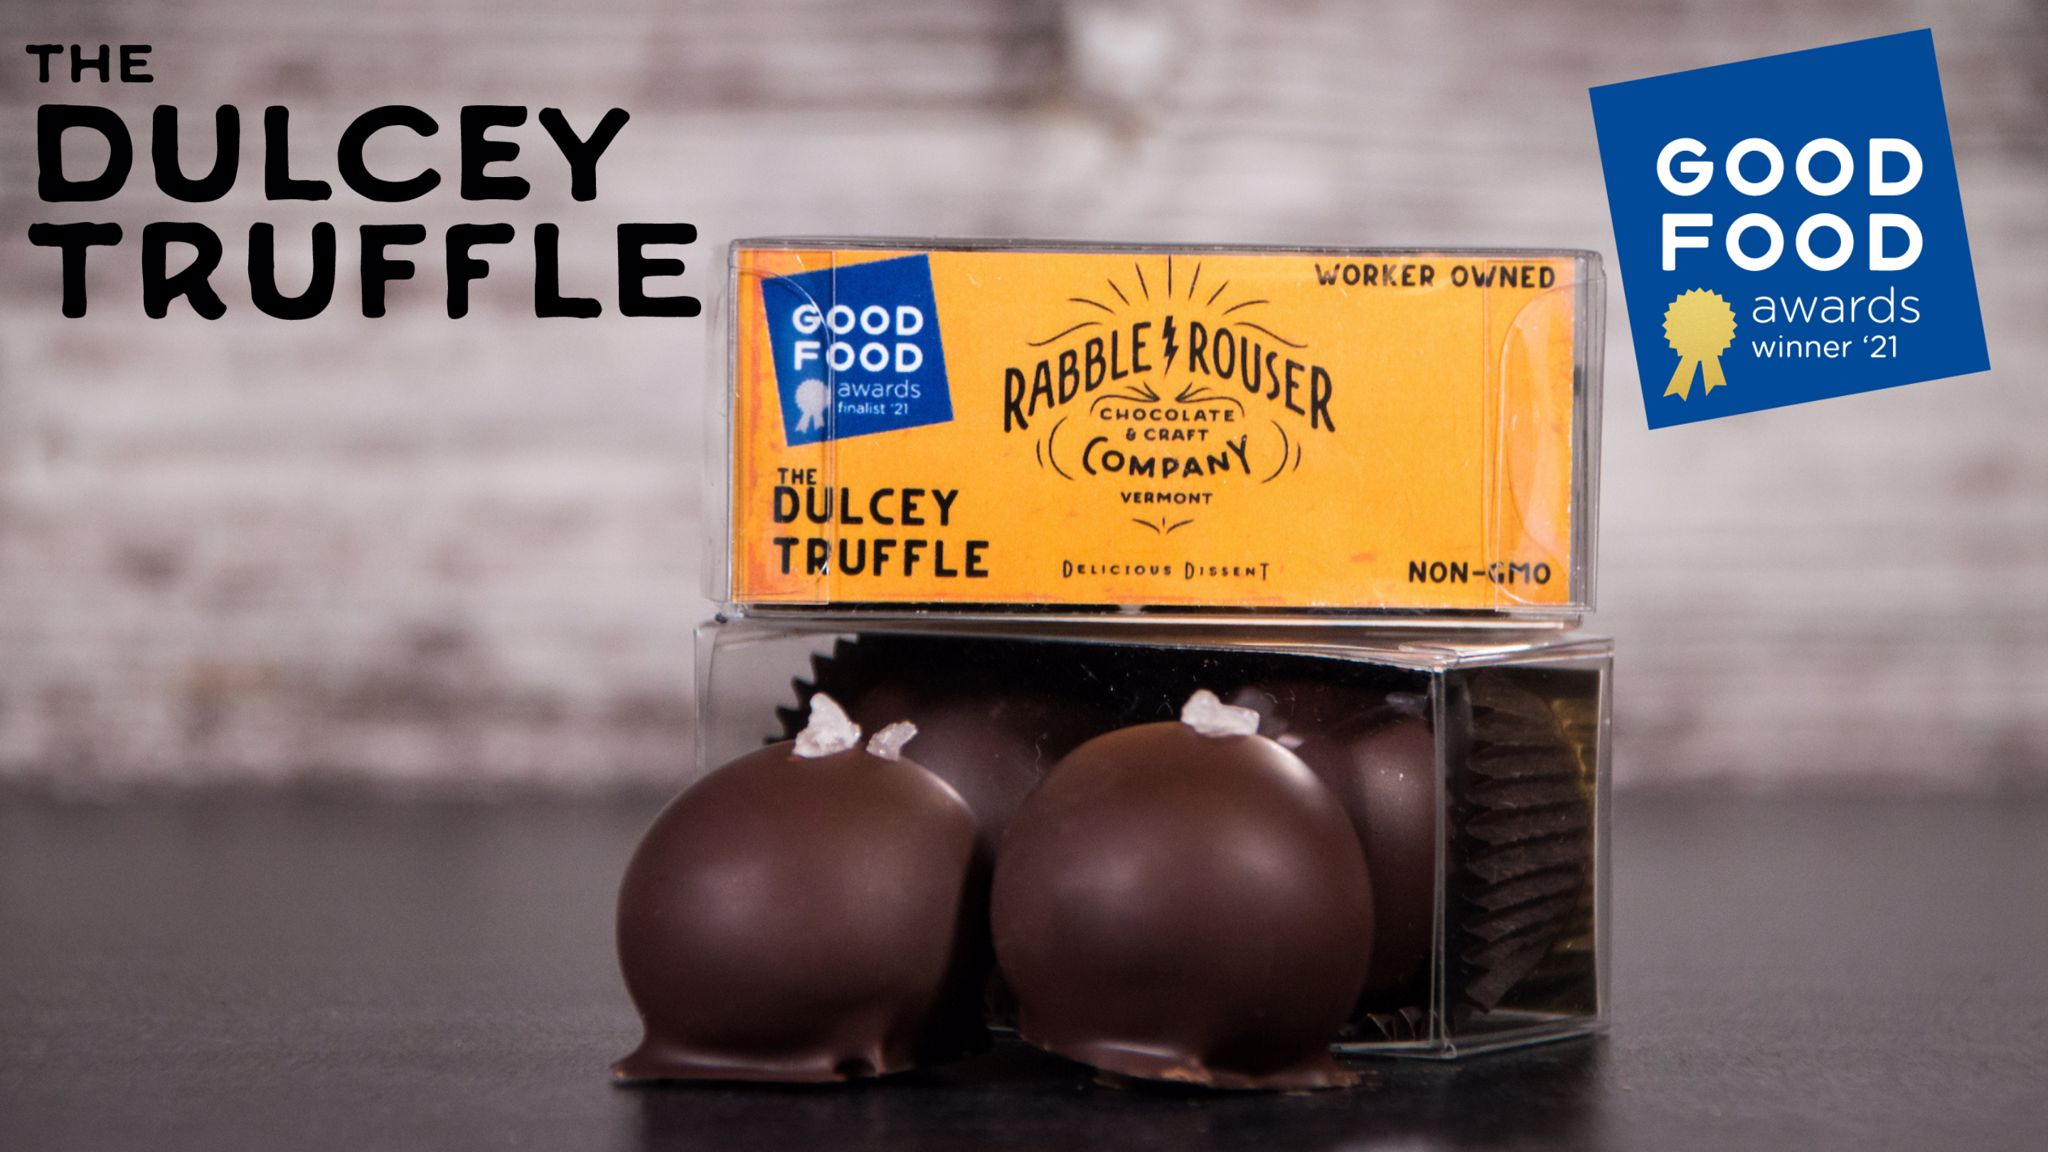 Rabble-Rouser's Award-Winning Dulcey Truffle from the 2021 Good Food Awards